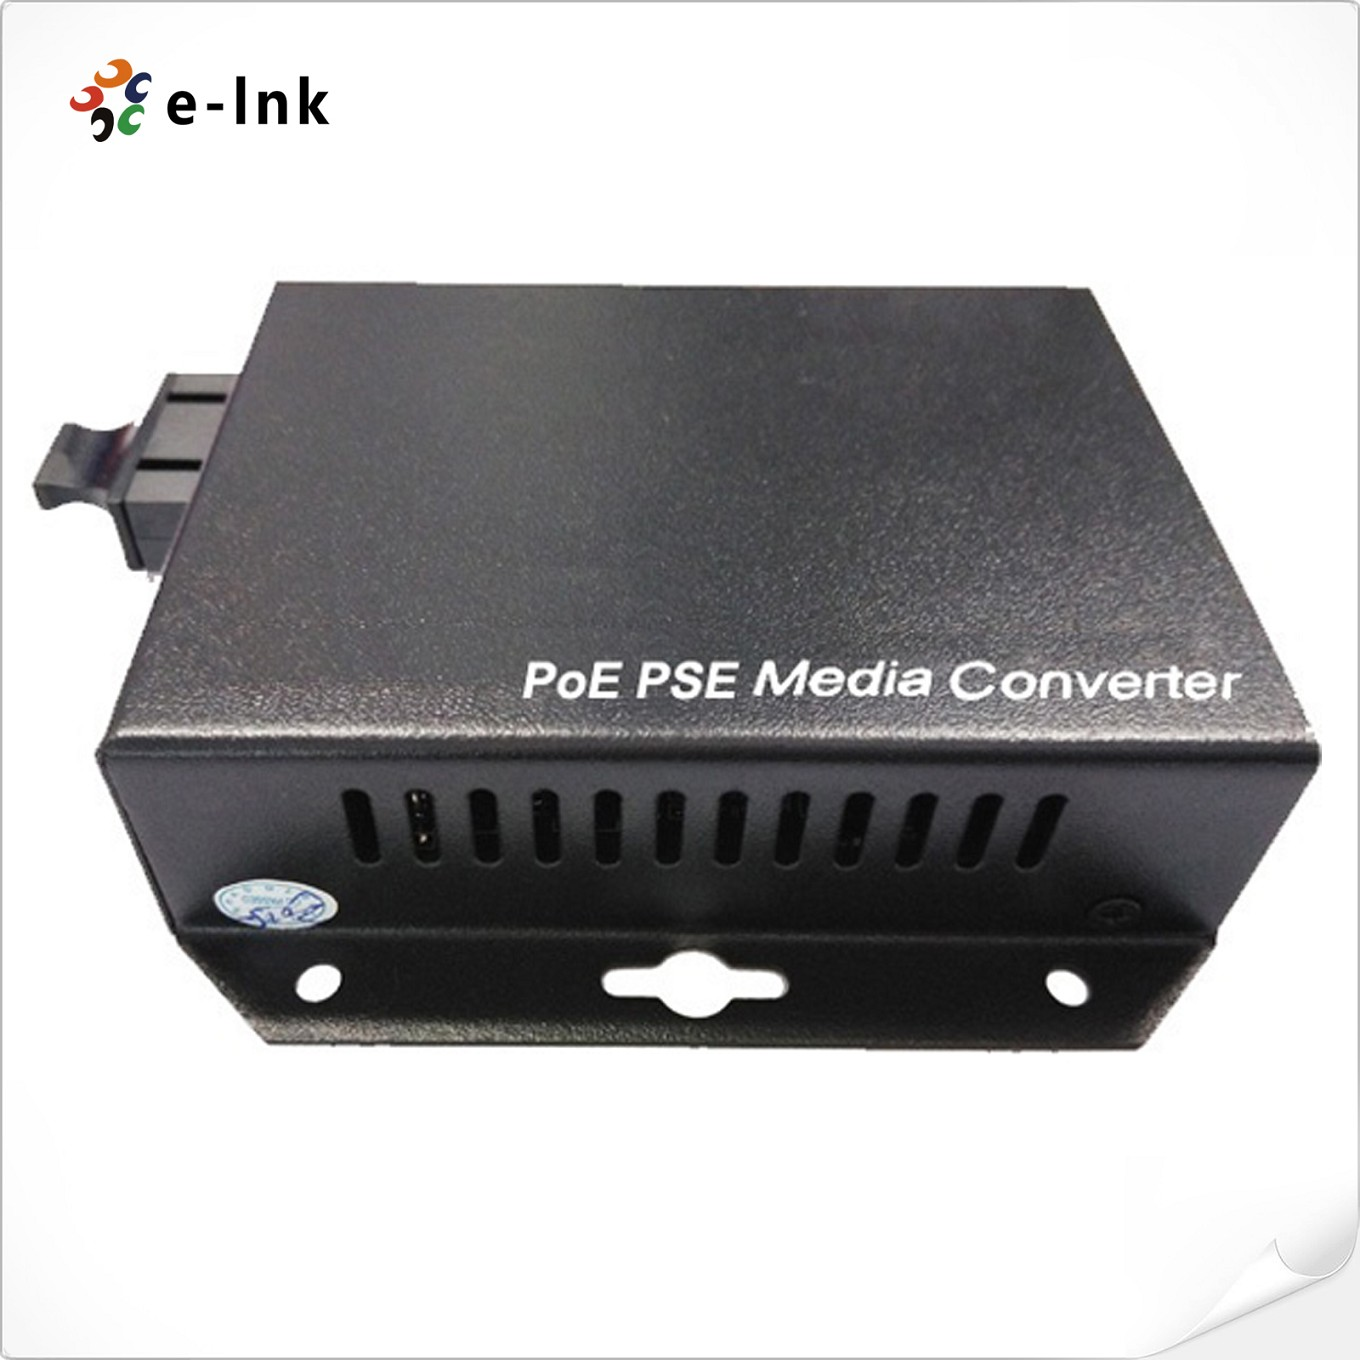 Wall-Mounted 10/100Mbps Fast Ethernet PoE-PSE Fiber Media Converter